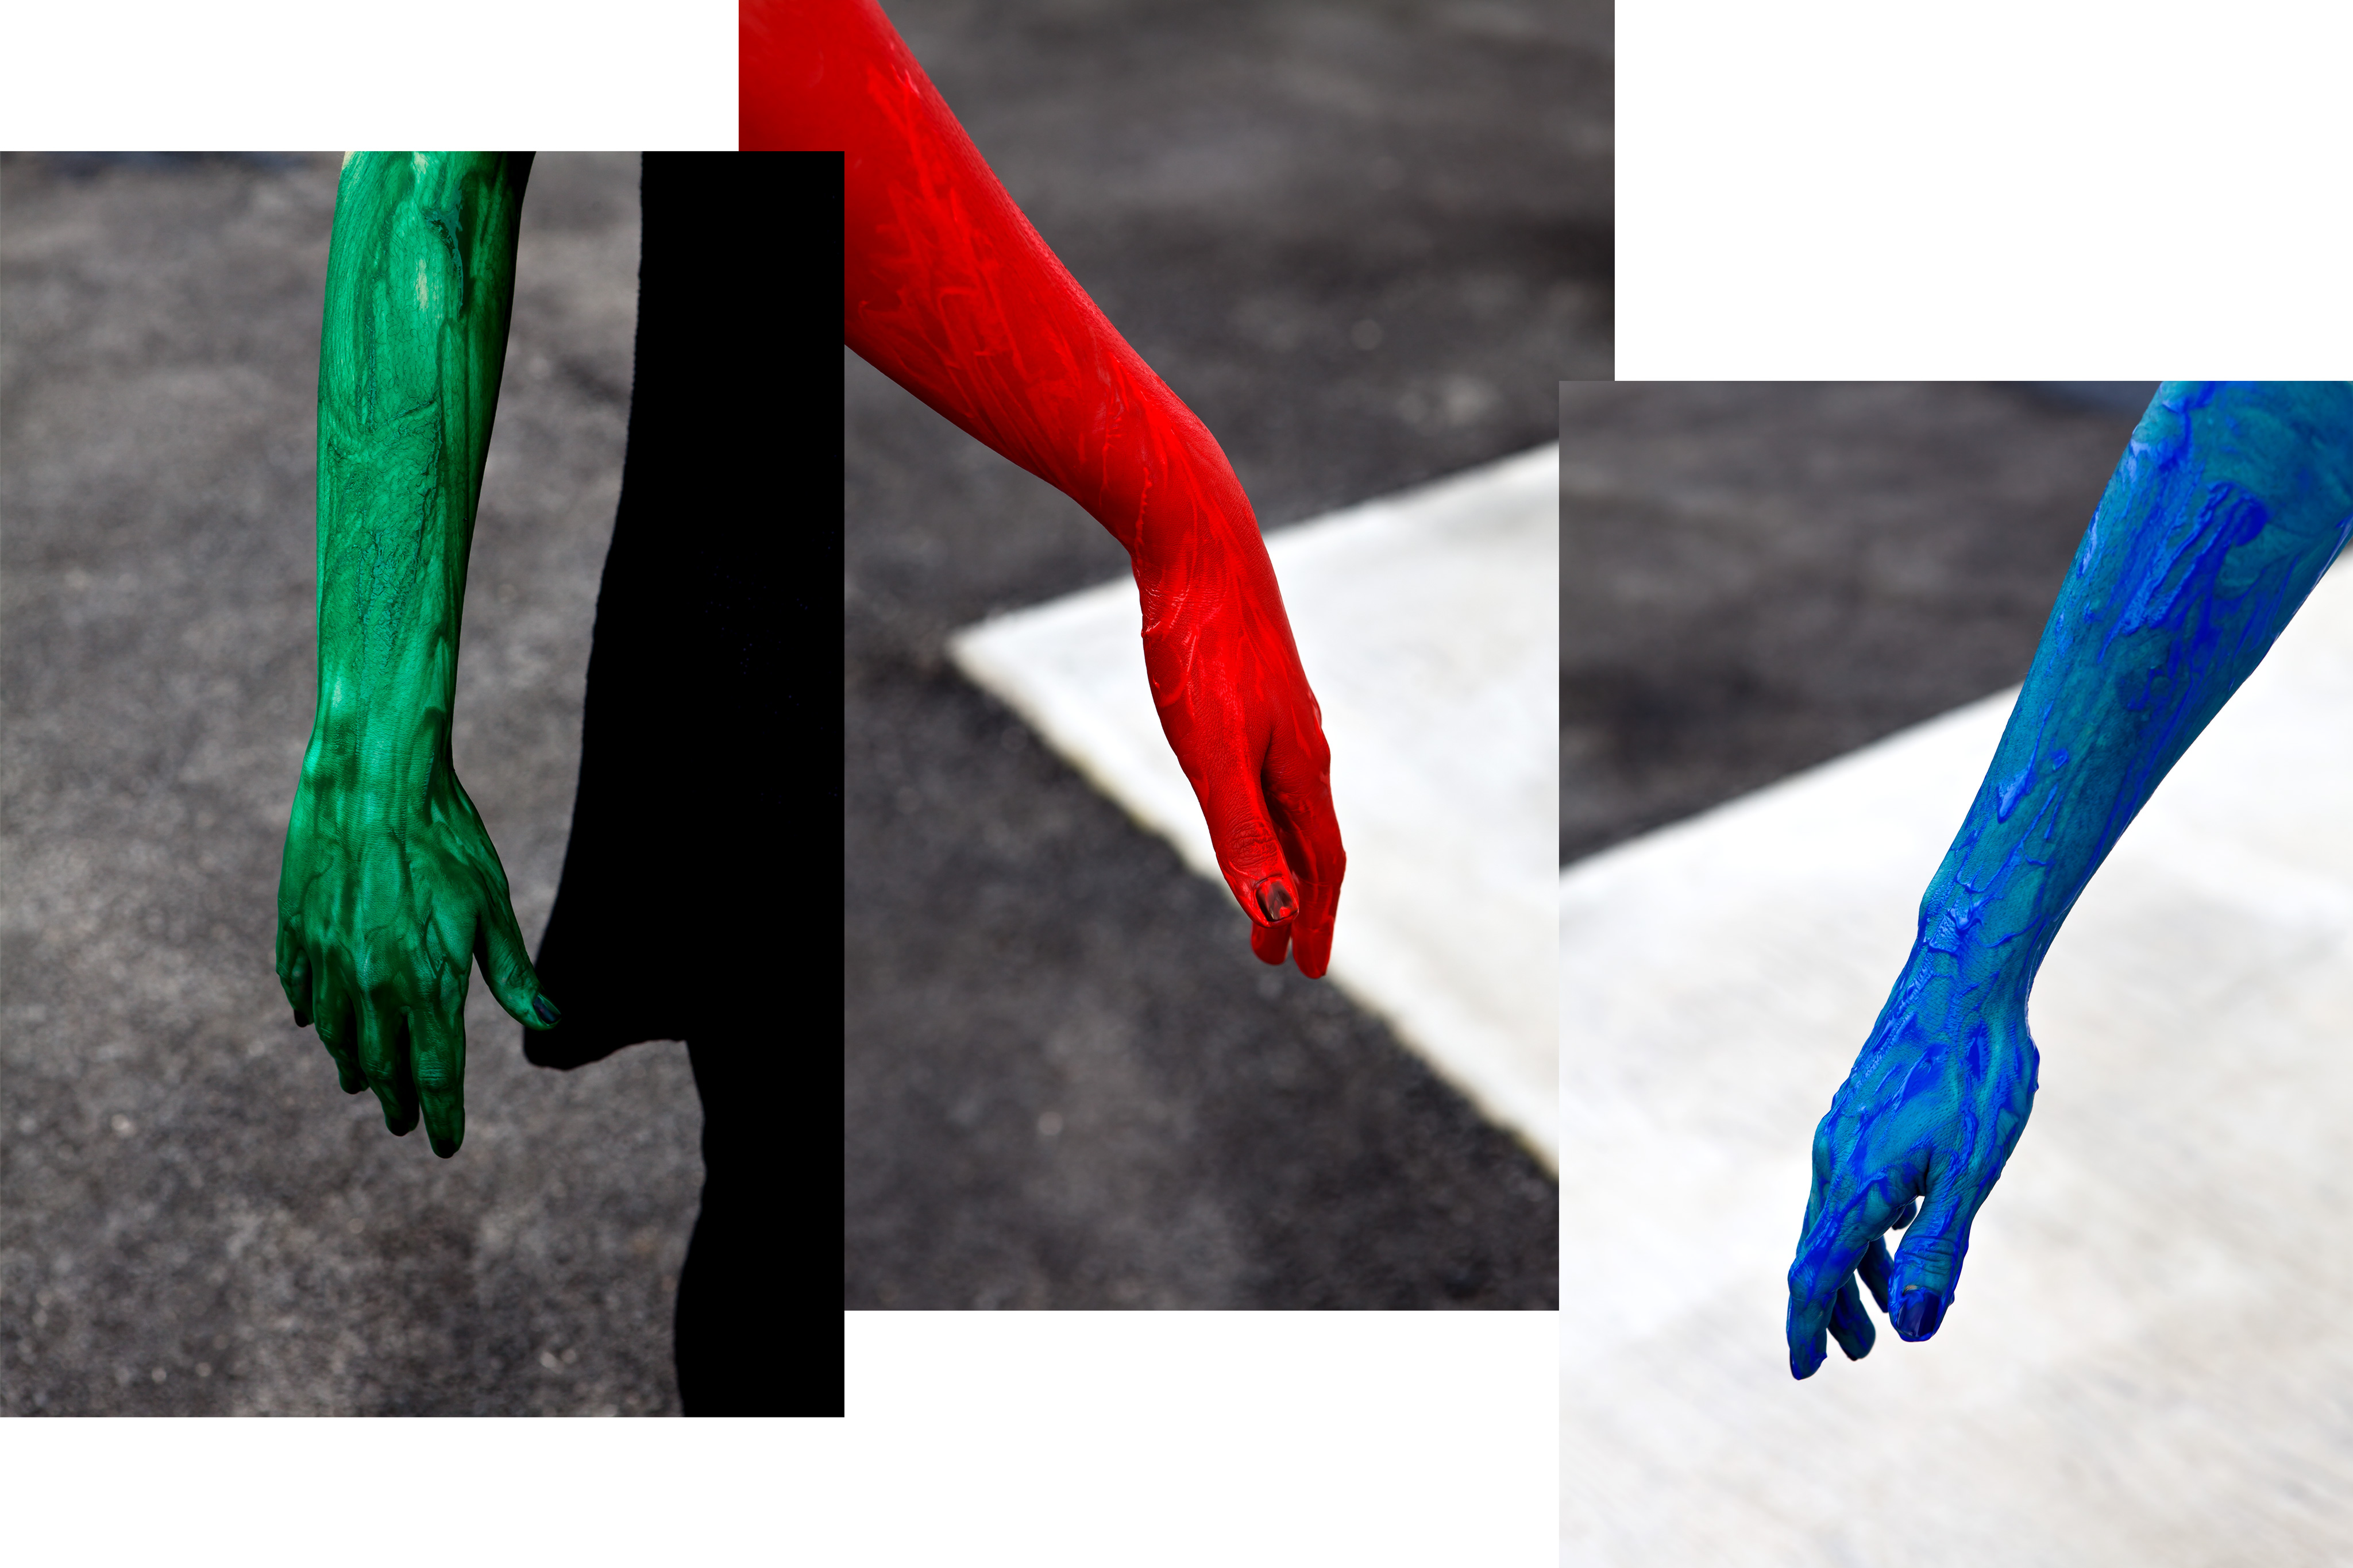 'RGB HANDS' BY MICHAEL KORONIS